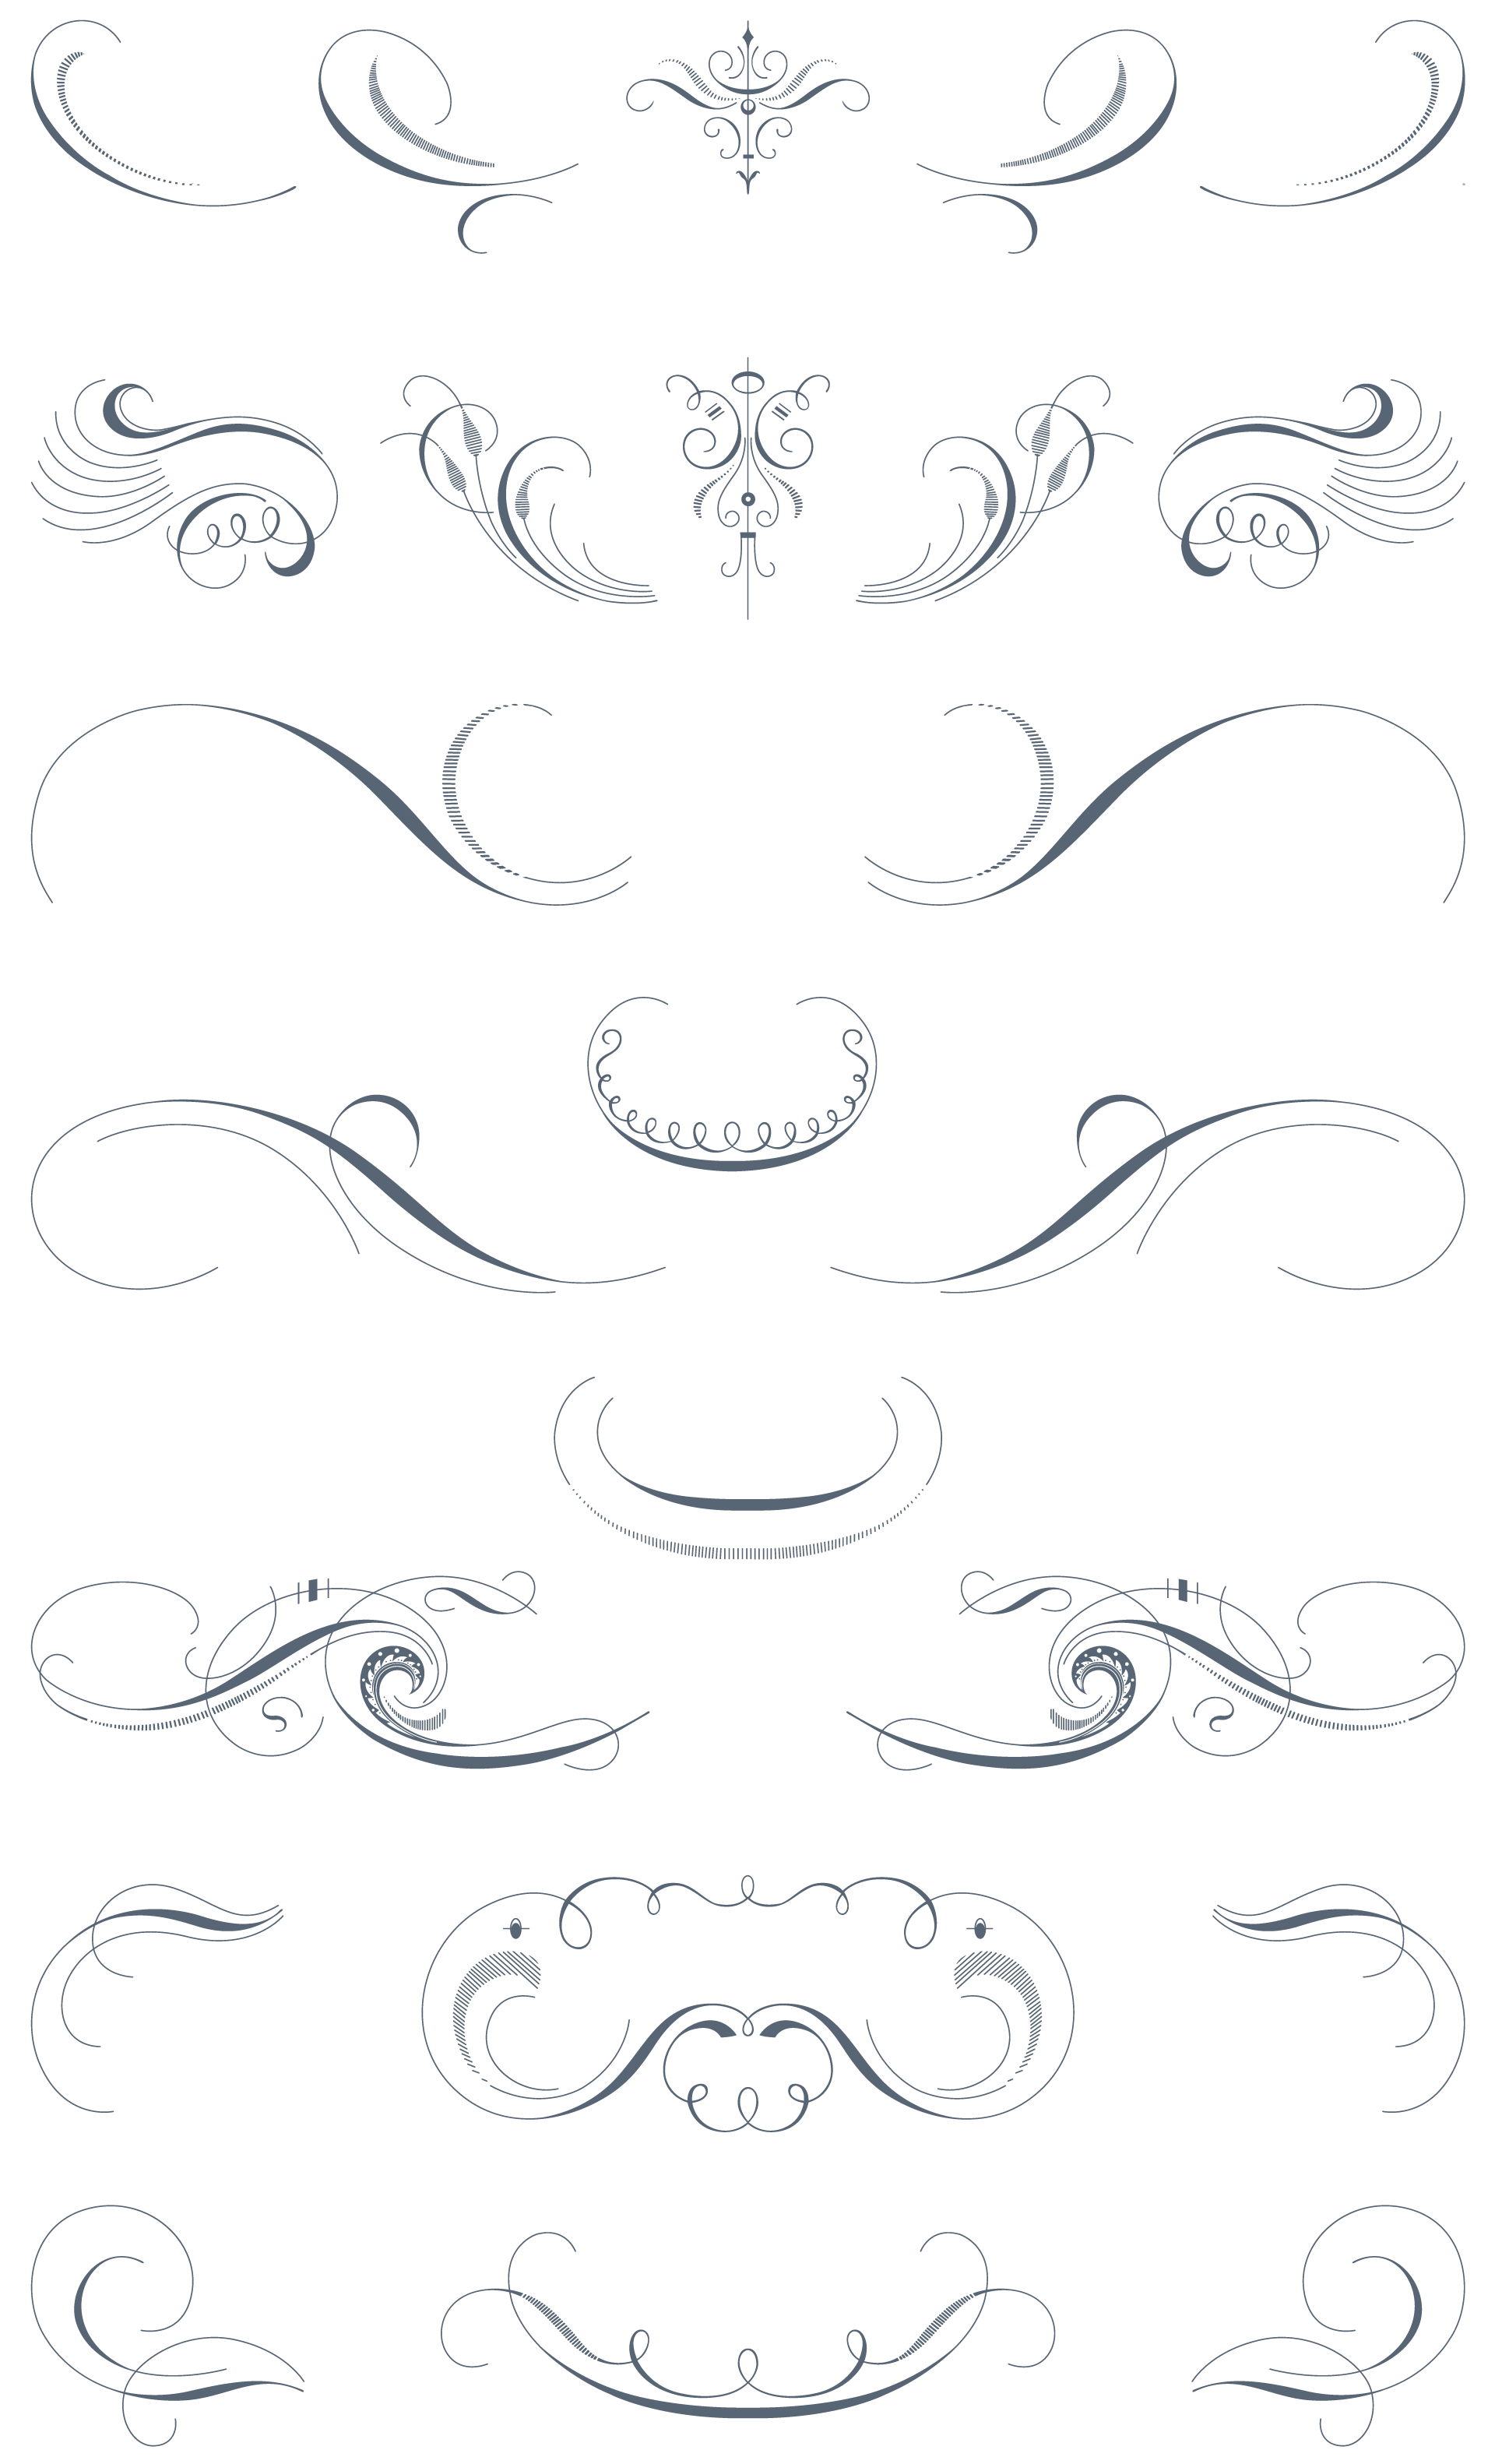 Luxurious pack ornaments decorative. Calligraphy vector flourishes png black and white stock